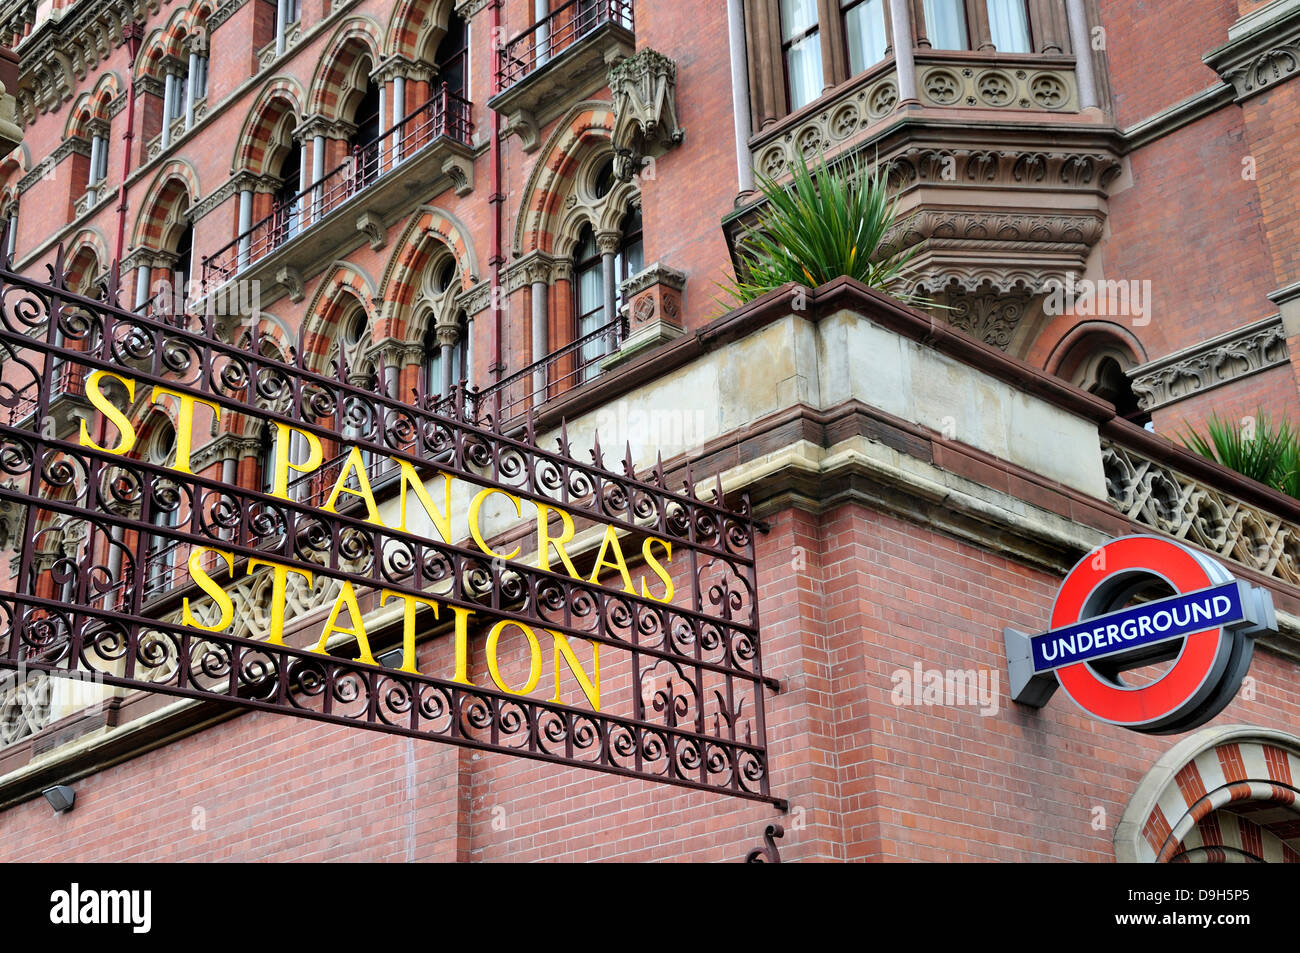 London, England, UK. St Pancras Railway Station. Old sign by the entrance - Stock Image